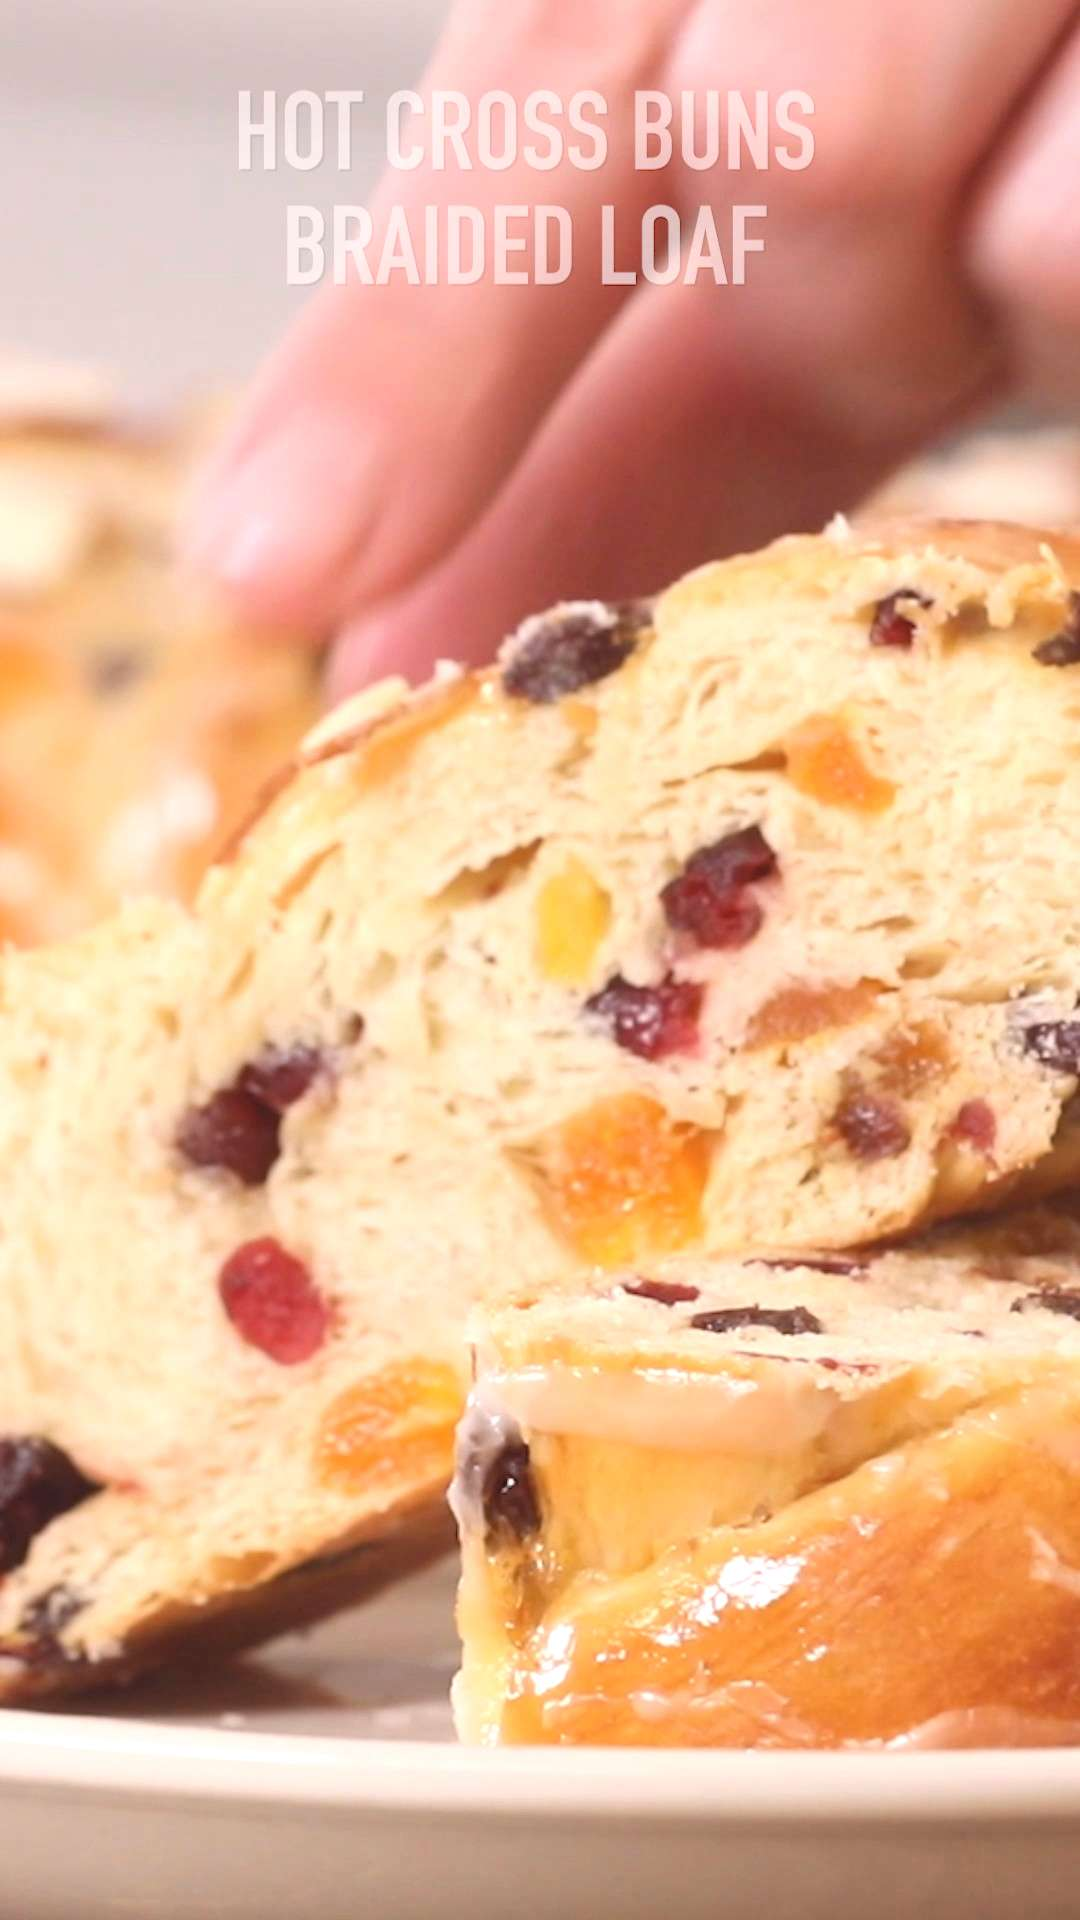 Hot Cross Buns Braided Loaf Tresse briochée aux fruits secs